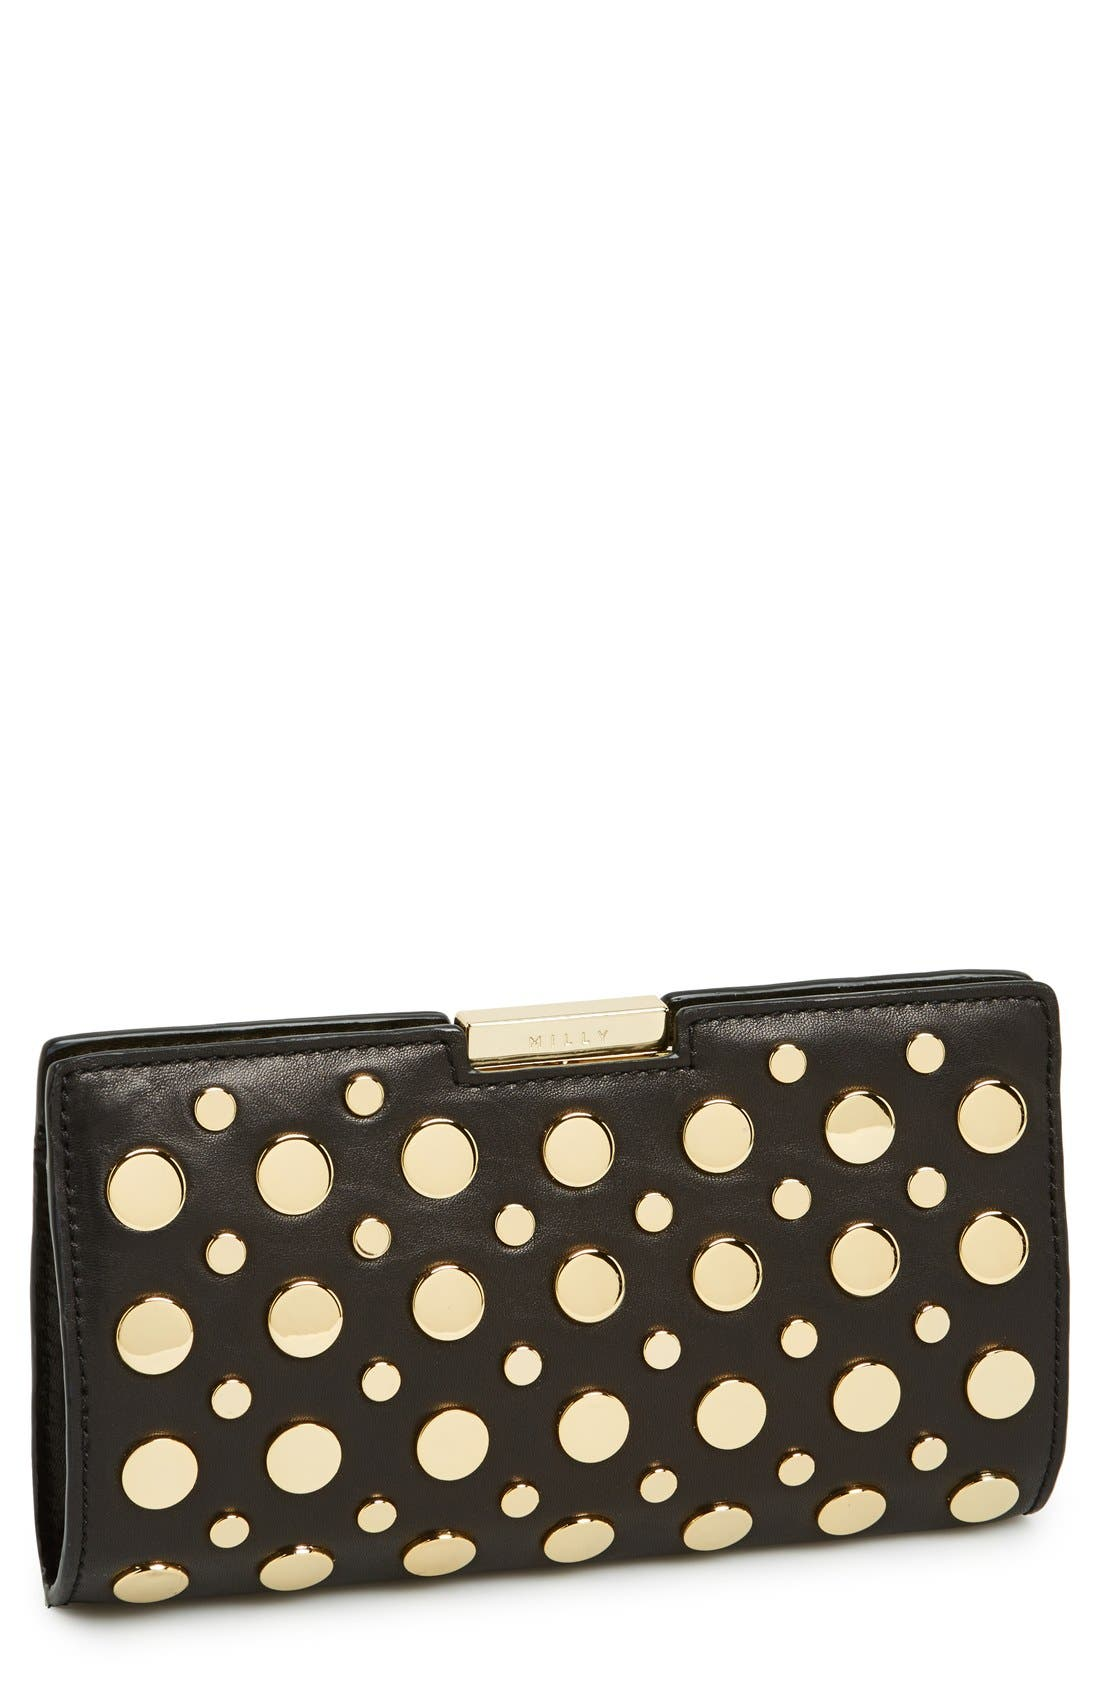 Main Image - Milly 'Small Cara' Frame Clutch